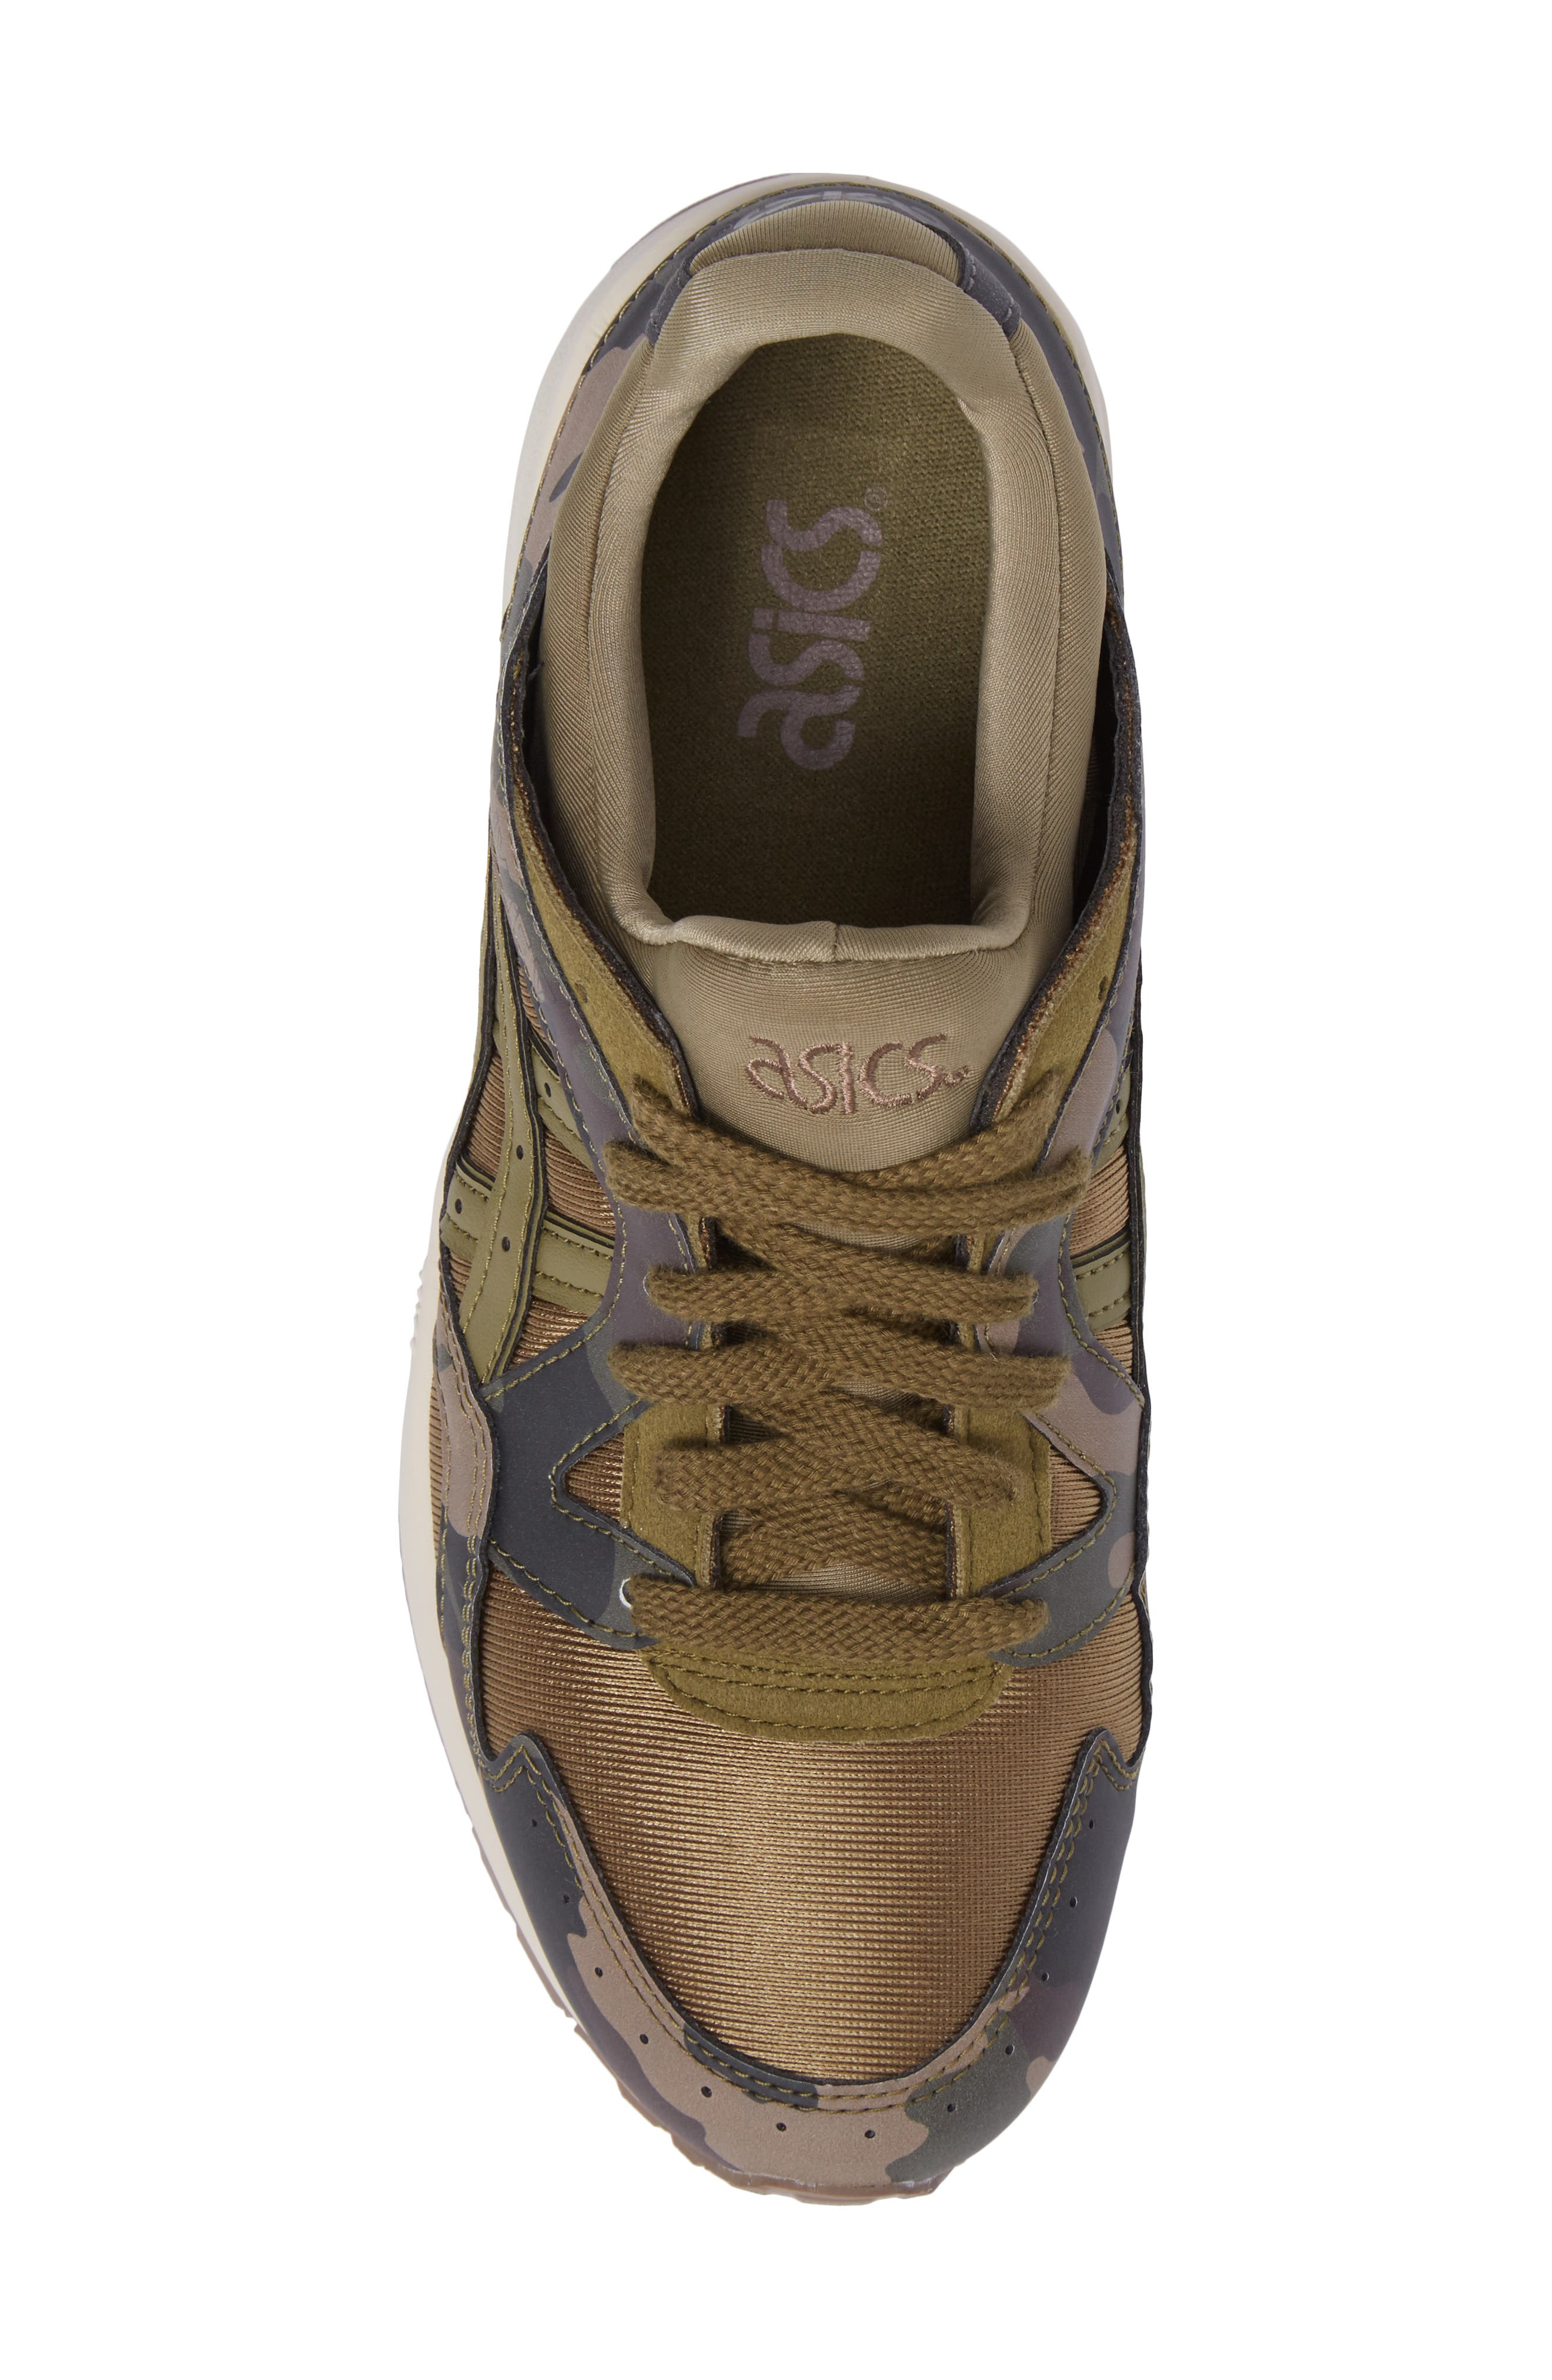 GEL-LYTE<sup>®</sup> V GS Sneaker,                             Alternate thumbnail 5, color,                             Martini Olive/ Martini Olive